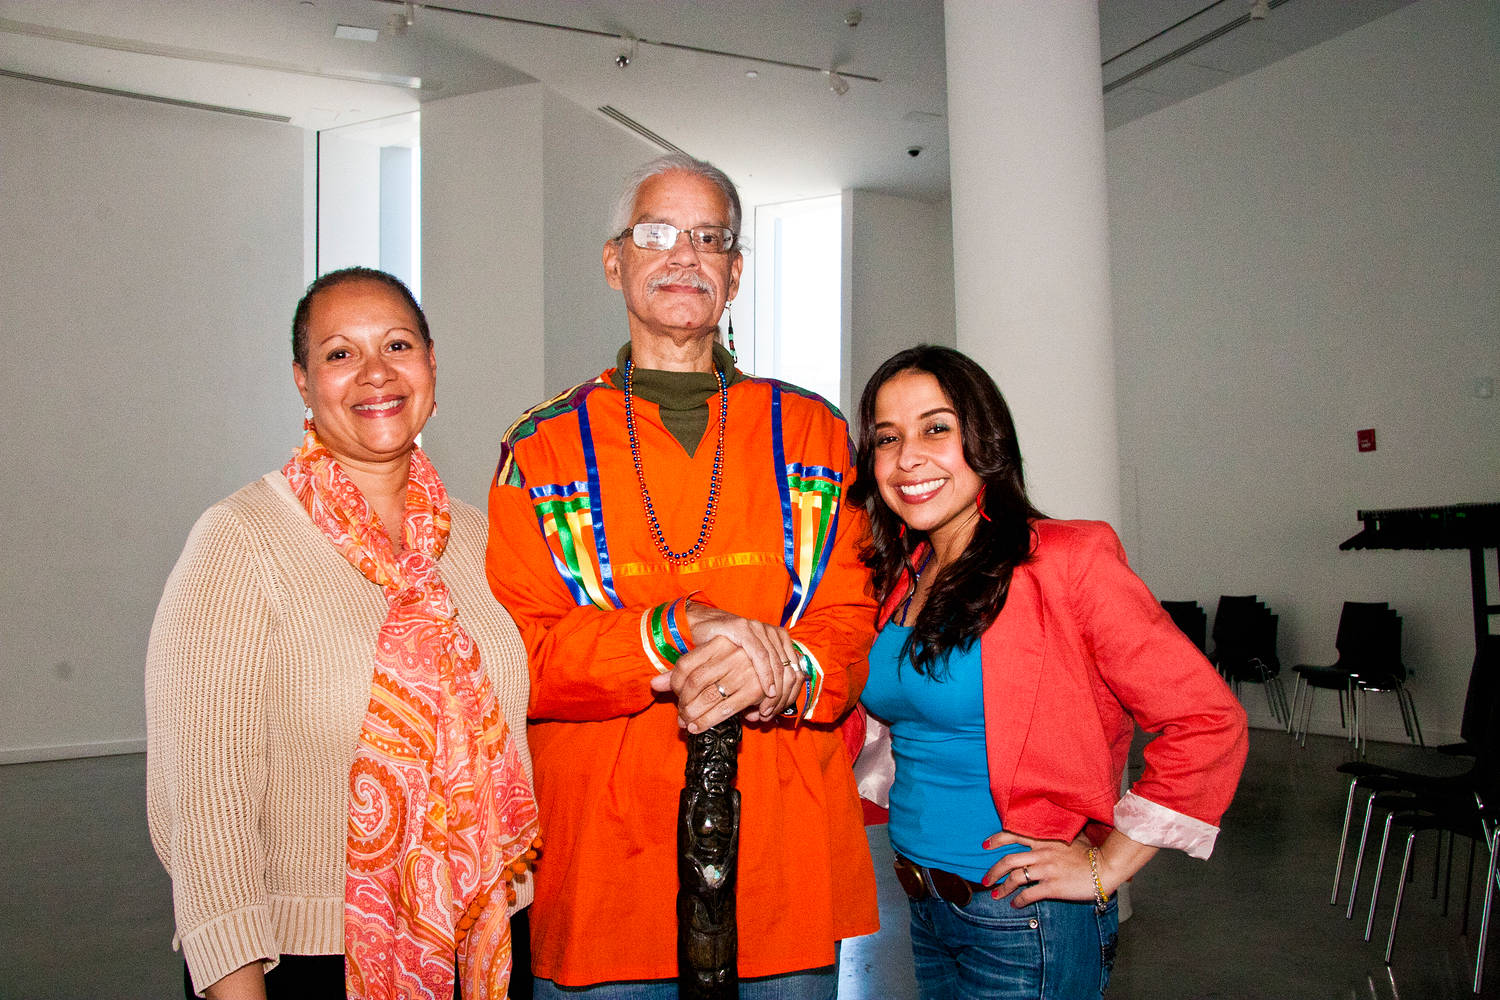 Artists Maria Aponte, Bobby Gonzalez and Peggy Robles Alvarado by Linda Bonilla